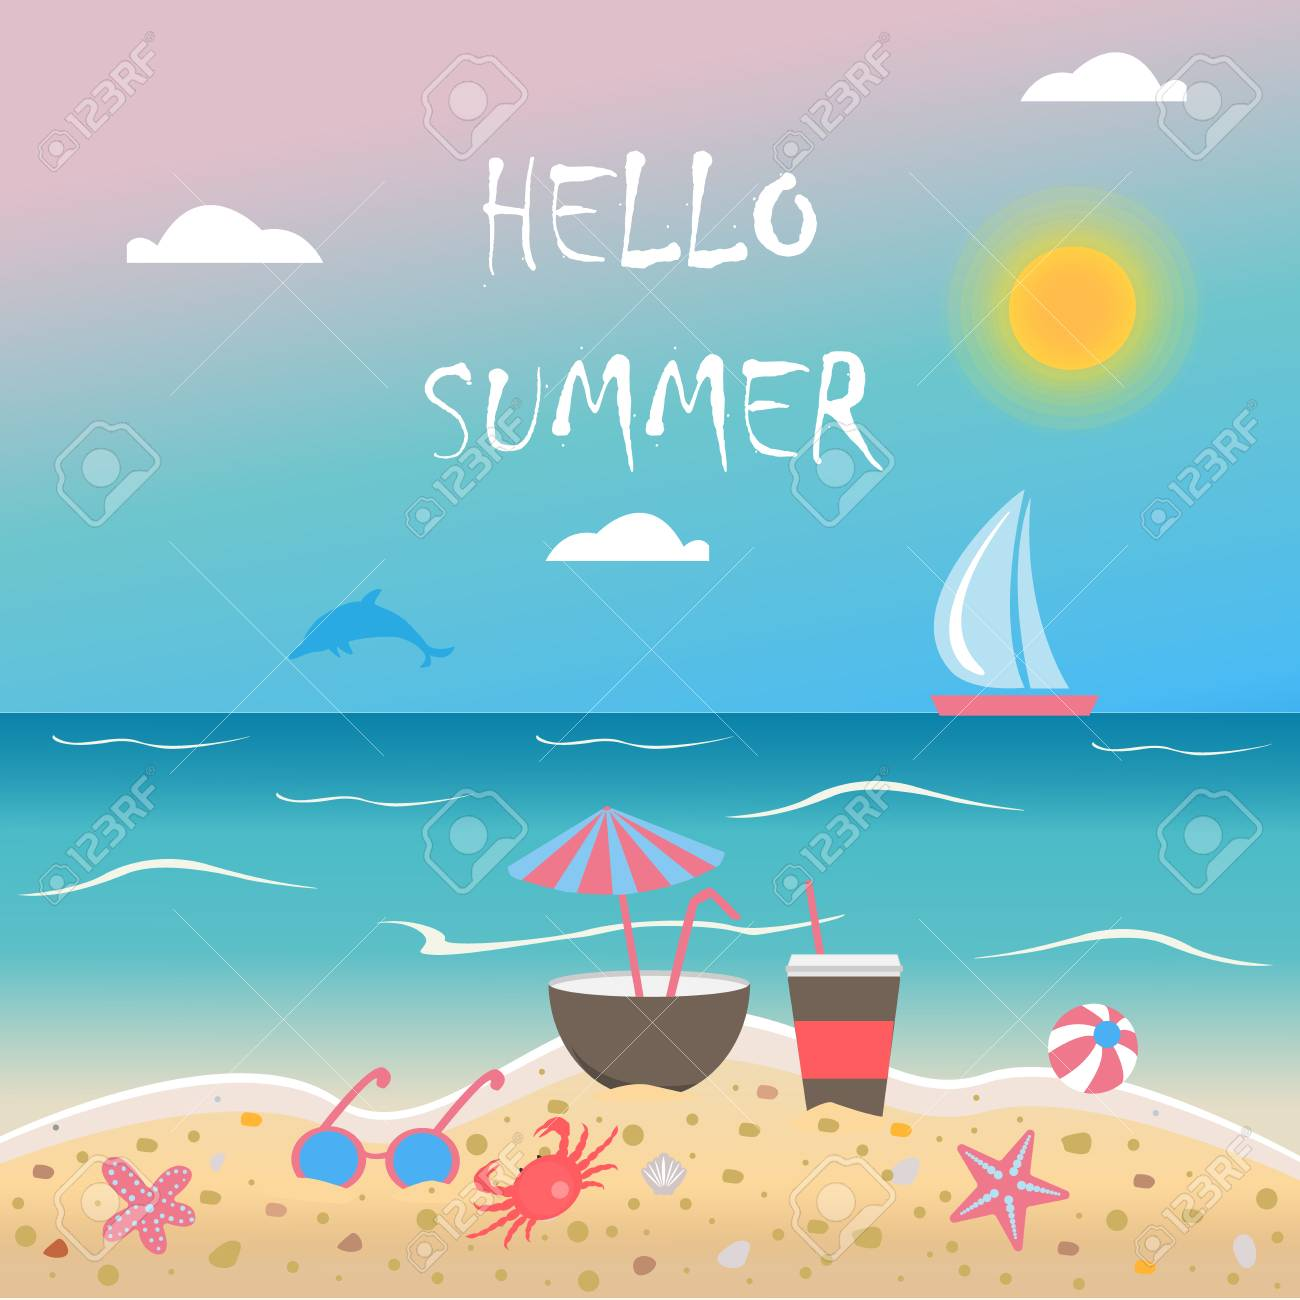 7d461292976 Hello Summer. Summer Vector Illustration. Seashore With Sunglasses ...